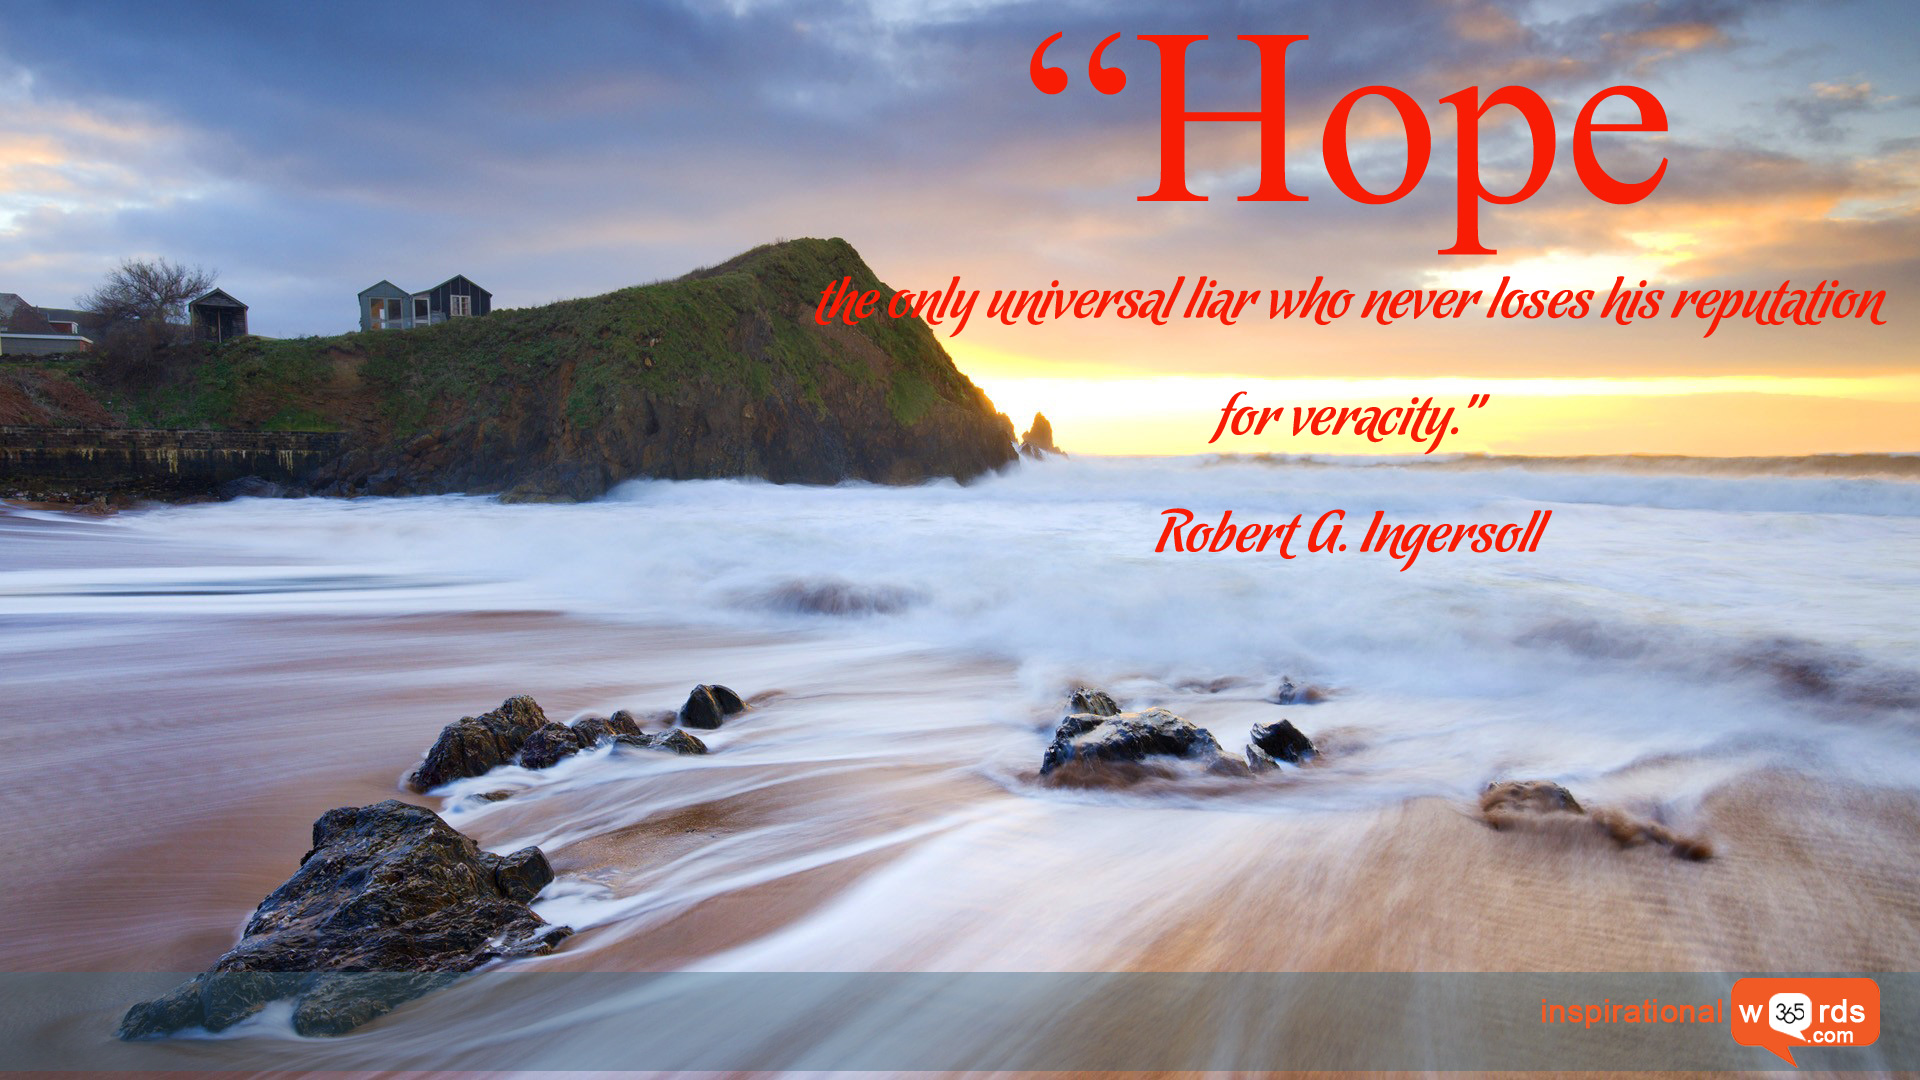 Inspirational Wallpaper Quote by Robert G. Ingersoll